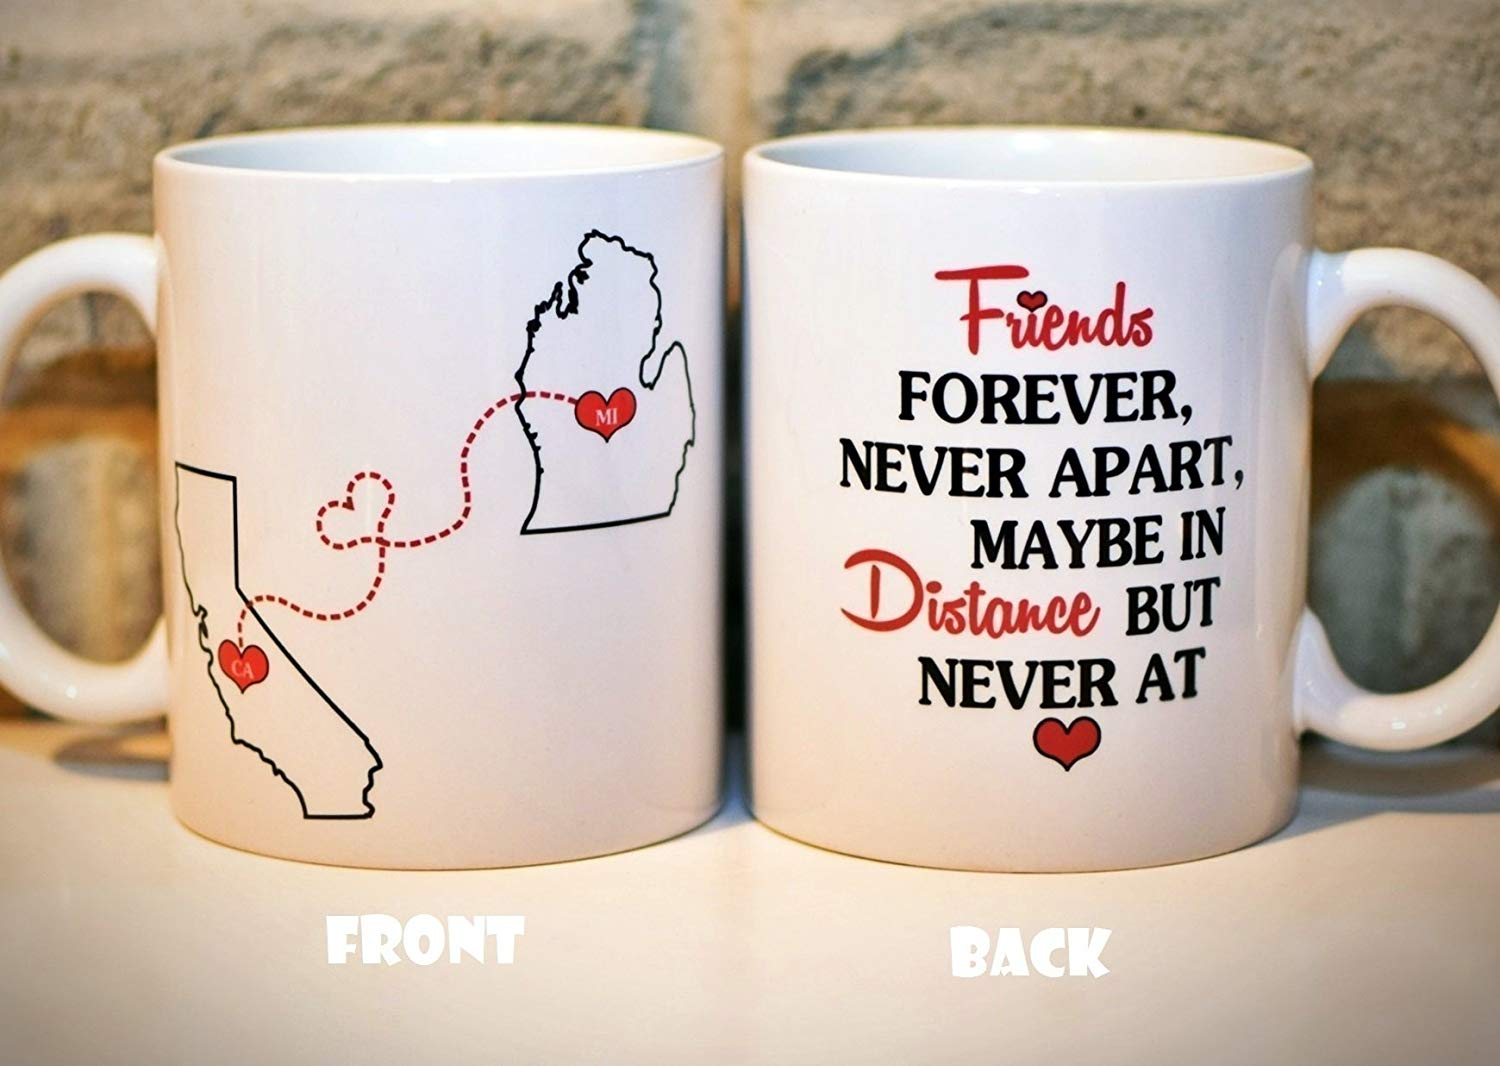 Long Distance Coffee Mug | States Mug | BFF Coffee Mug | Best Friends Mug | Valentine's Day Gift | Gift for Valentines | Personalized with Custom Quote | All States, Countries - 11oz or 15oz | ONE MUG